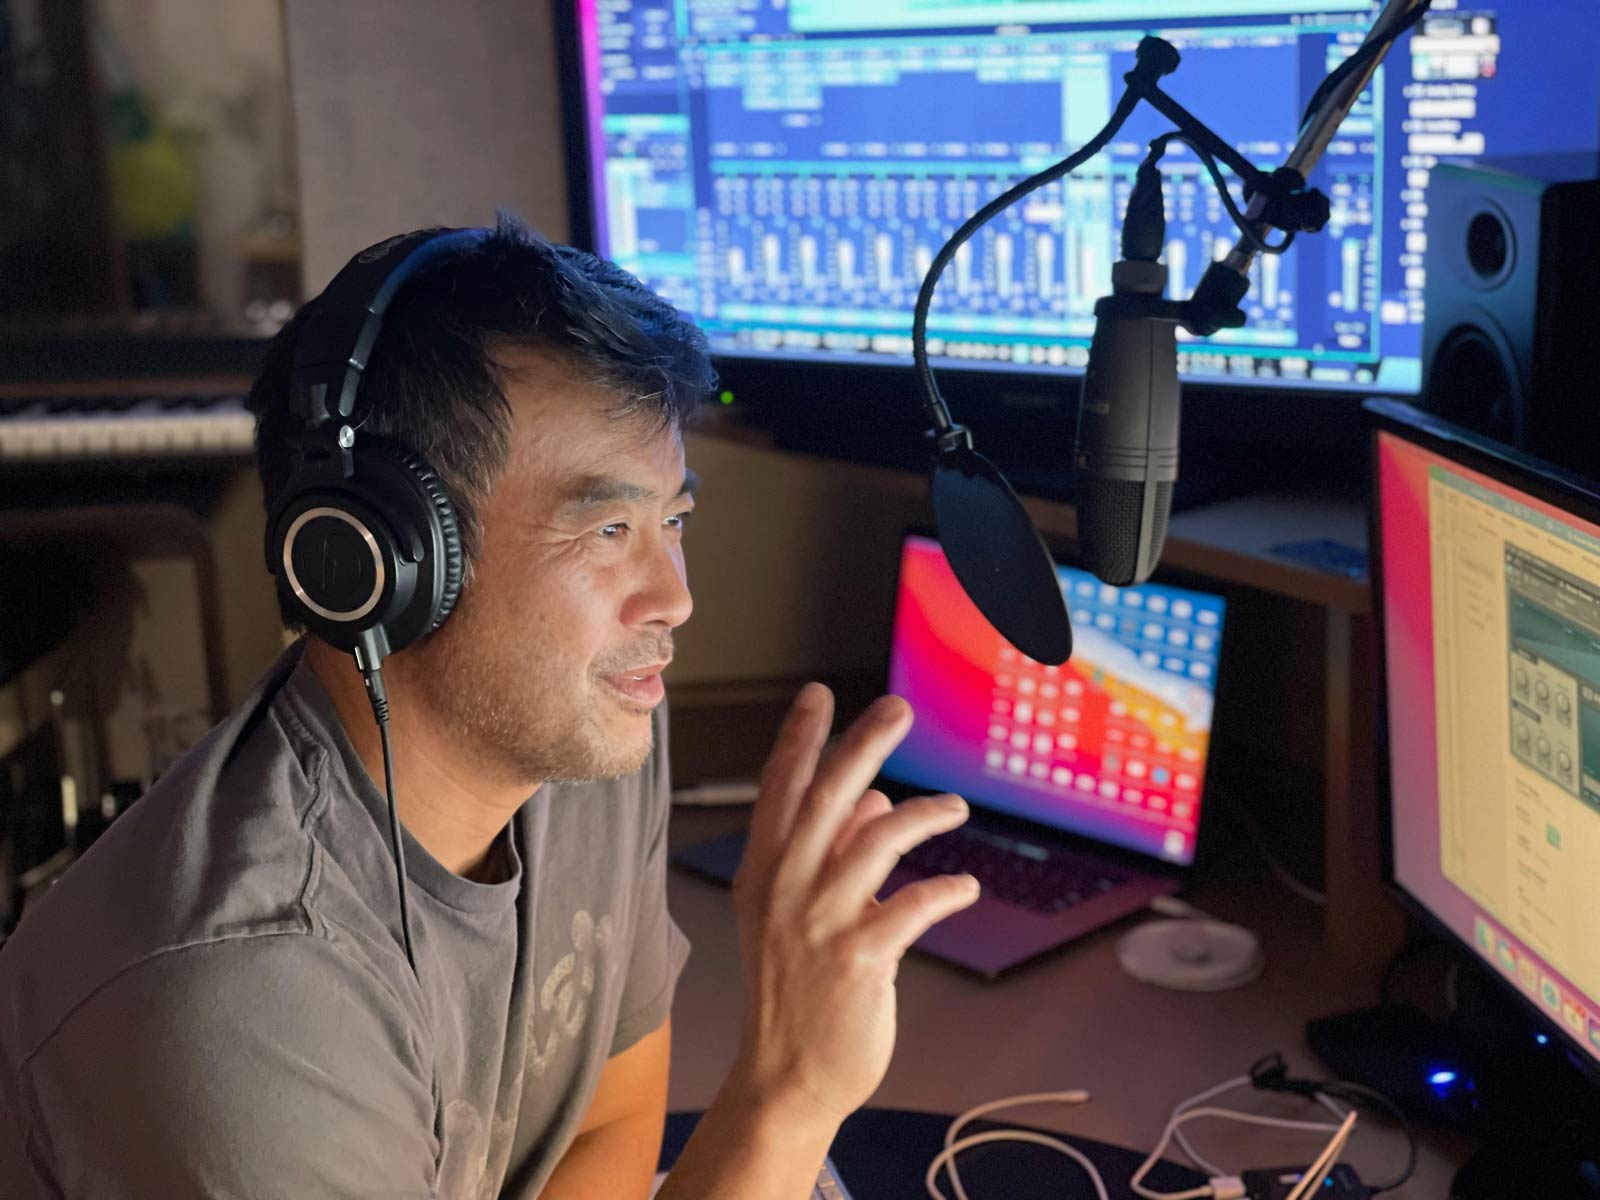 podcast host Jeff Yasuda speaking into a microphone in a recording studio